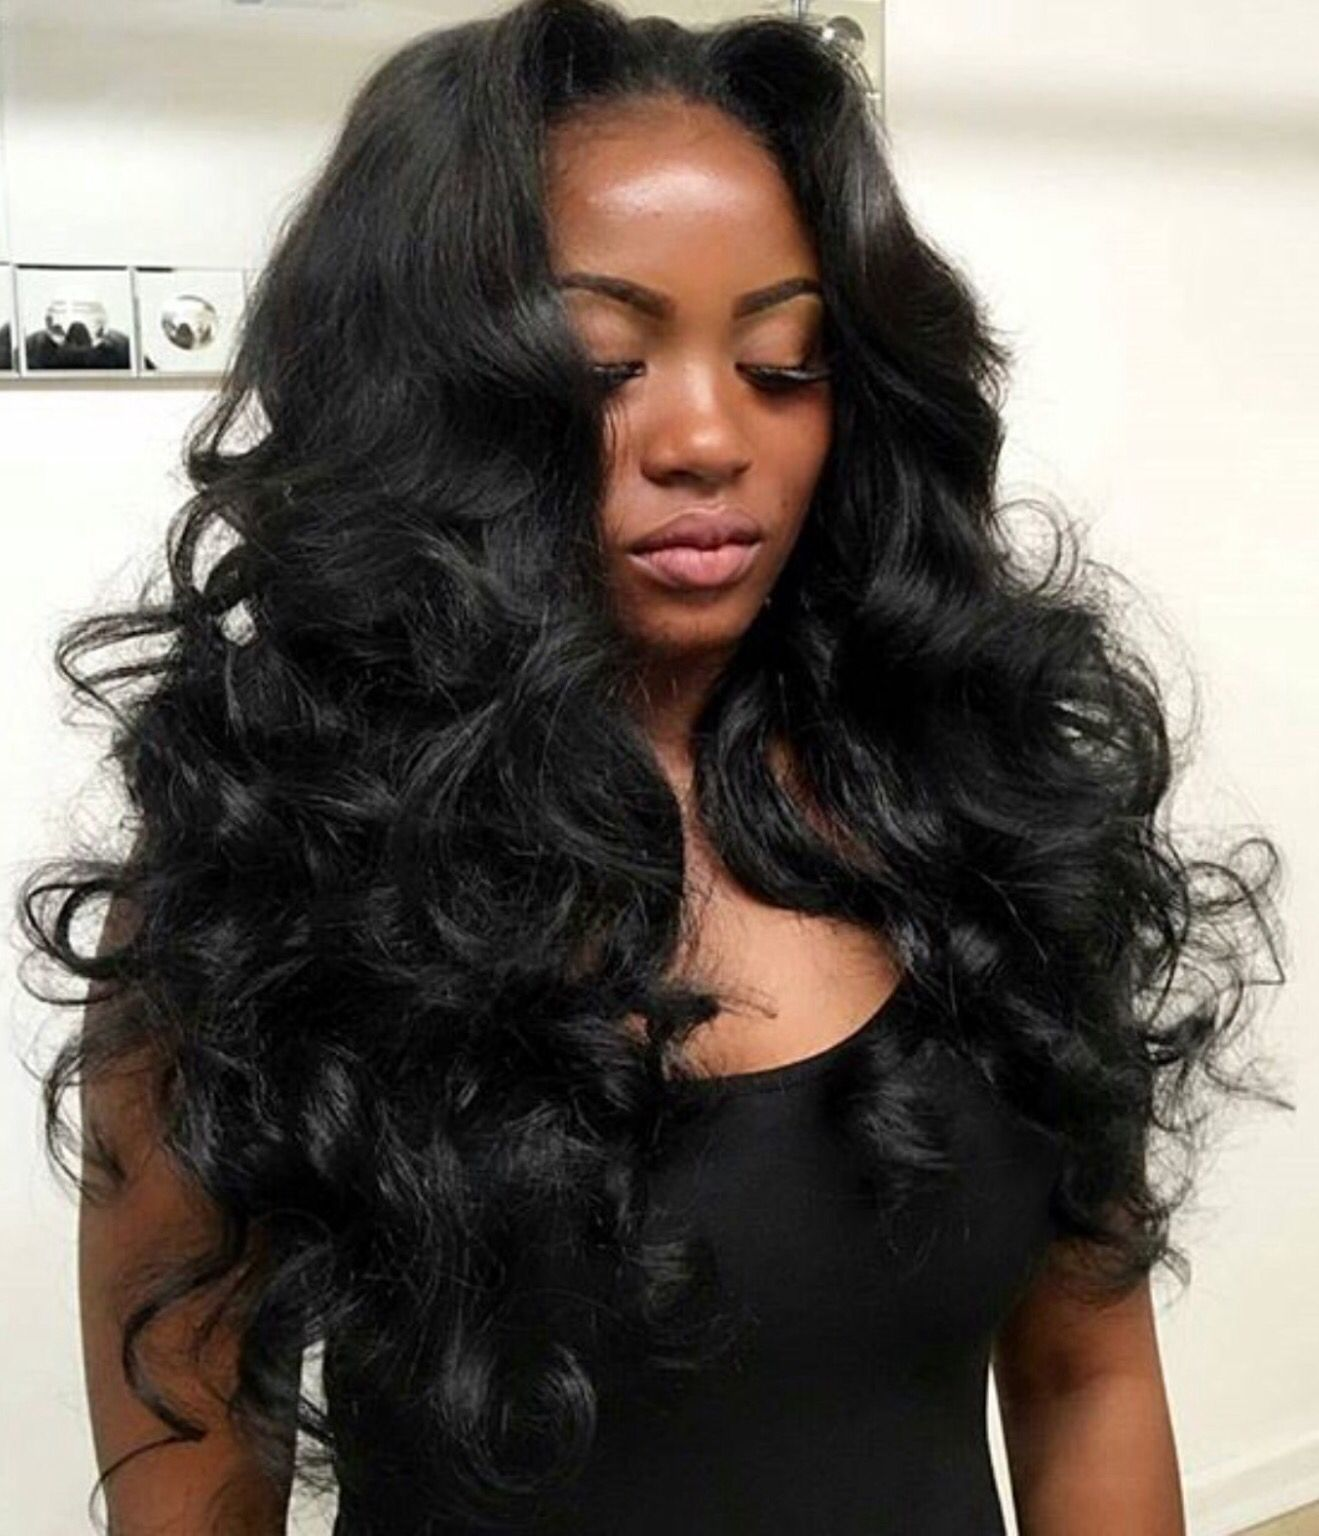 Pin by Kiarajames on SLAYED HAIR  Pinterest  App and Store